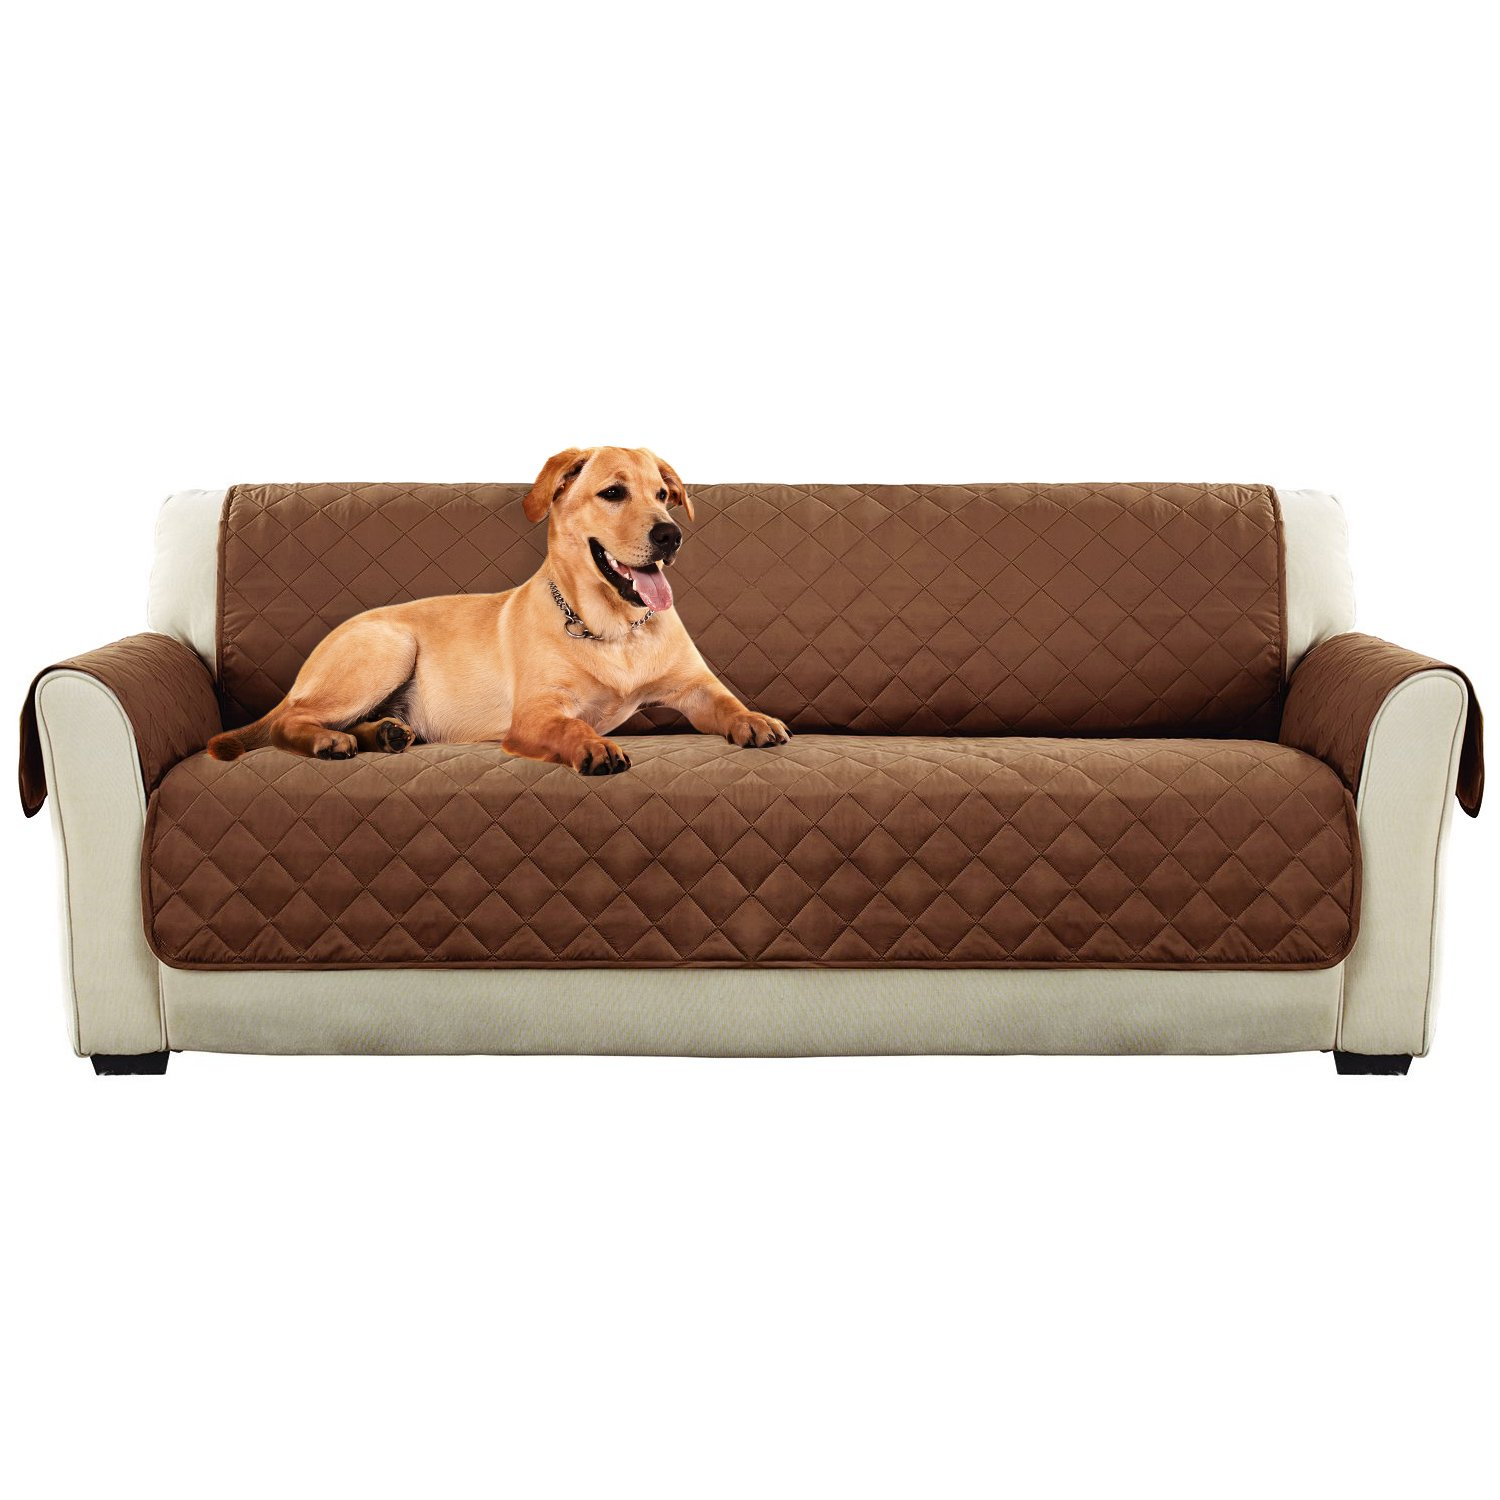 Animals Favorite Pet Sofa Cover Quilted Pet Throw Furniture Protector for Dogs 02-00023-01